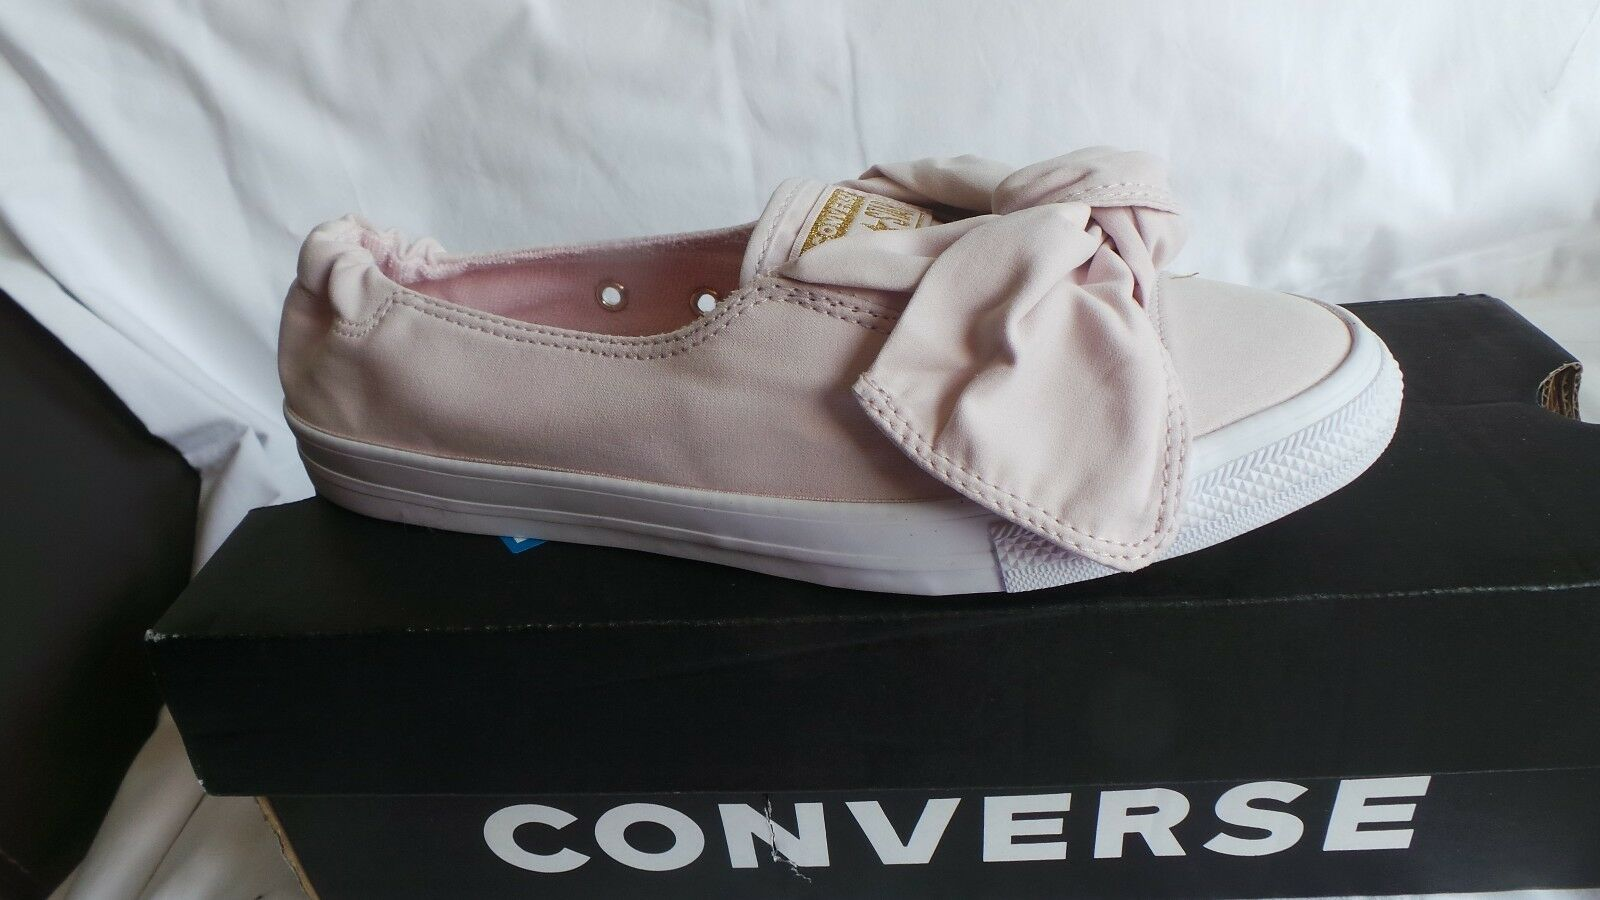 NEW in box Converse Chuck Taylor AS Knot Slip Ox Trainers Size 6 EU 40 Bare pink